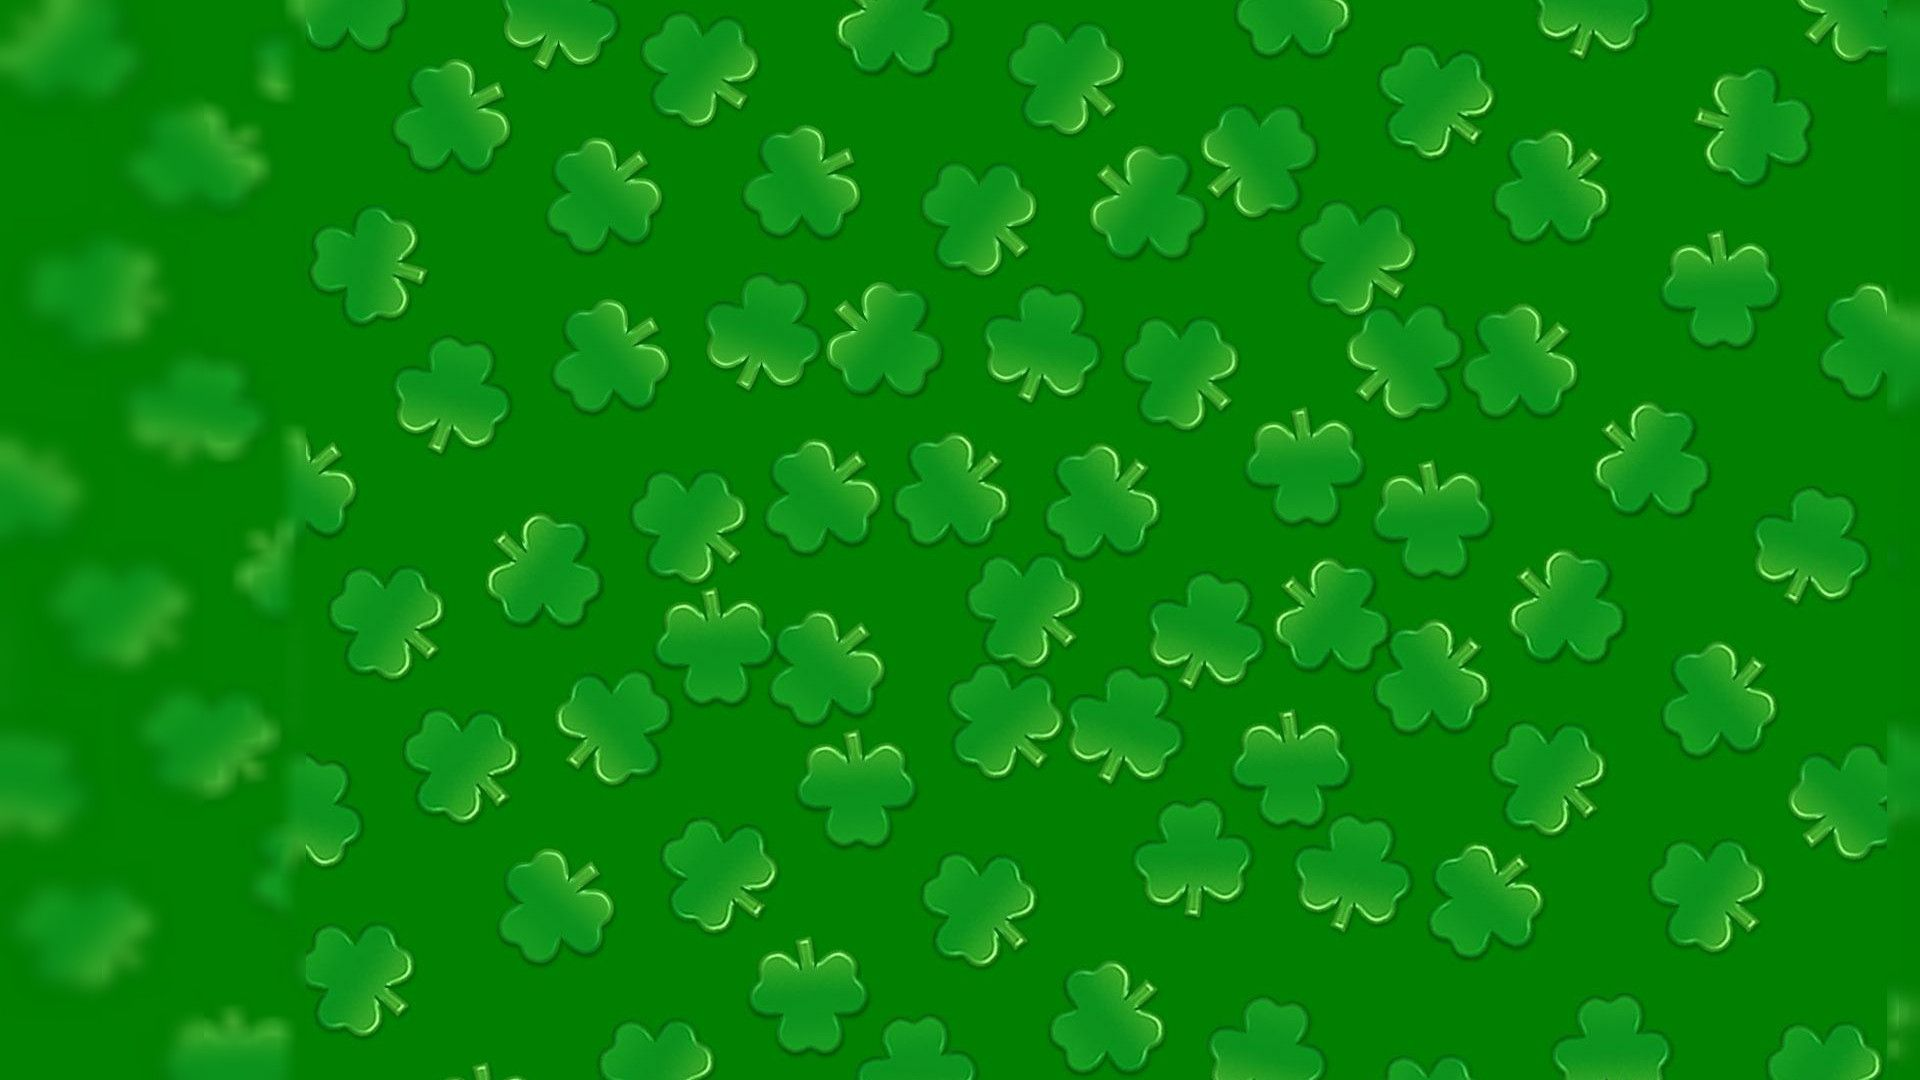 Backgrounds St Patricks Day Desktop  PixelsTalk Shamrock Background Wallpaper   1920x1080